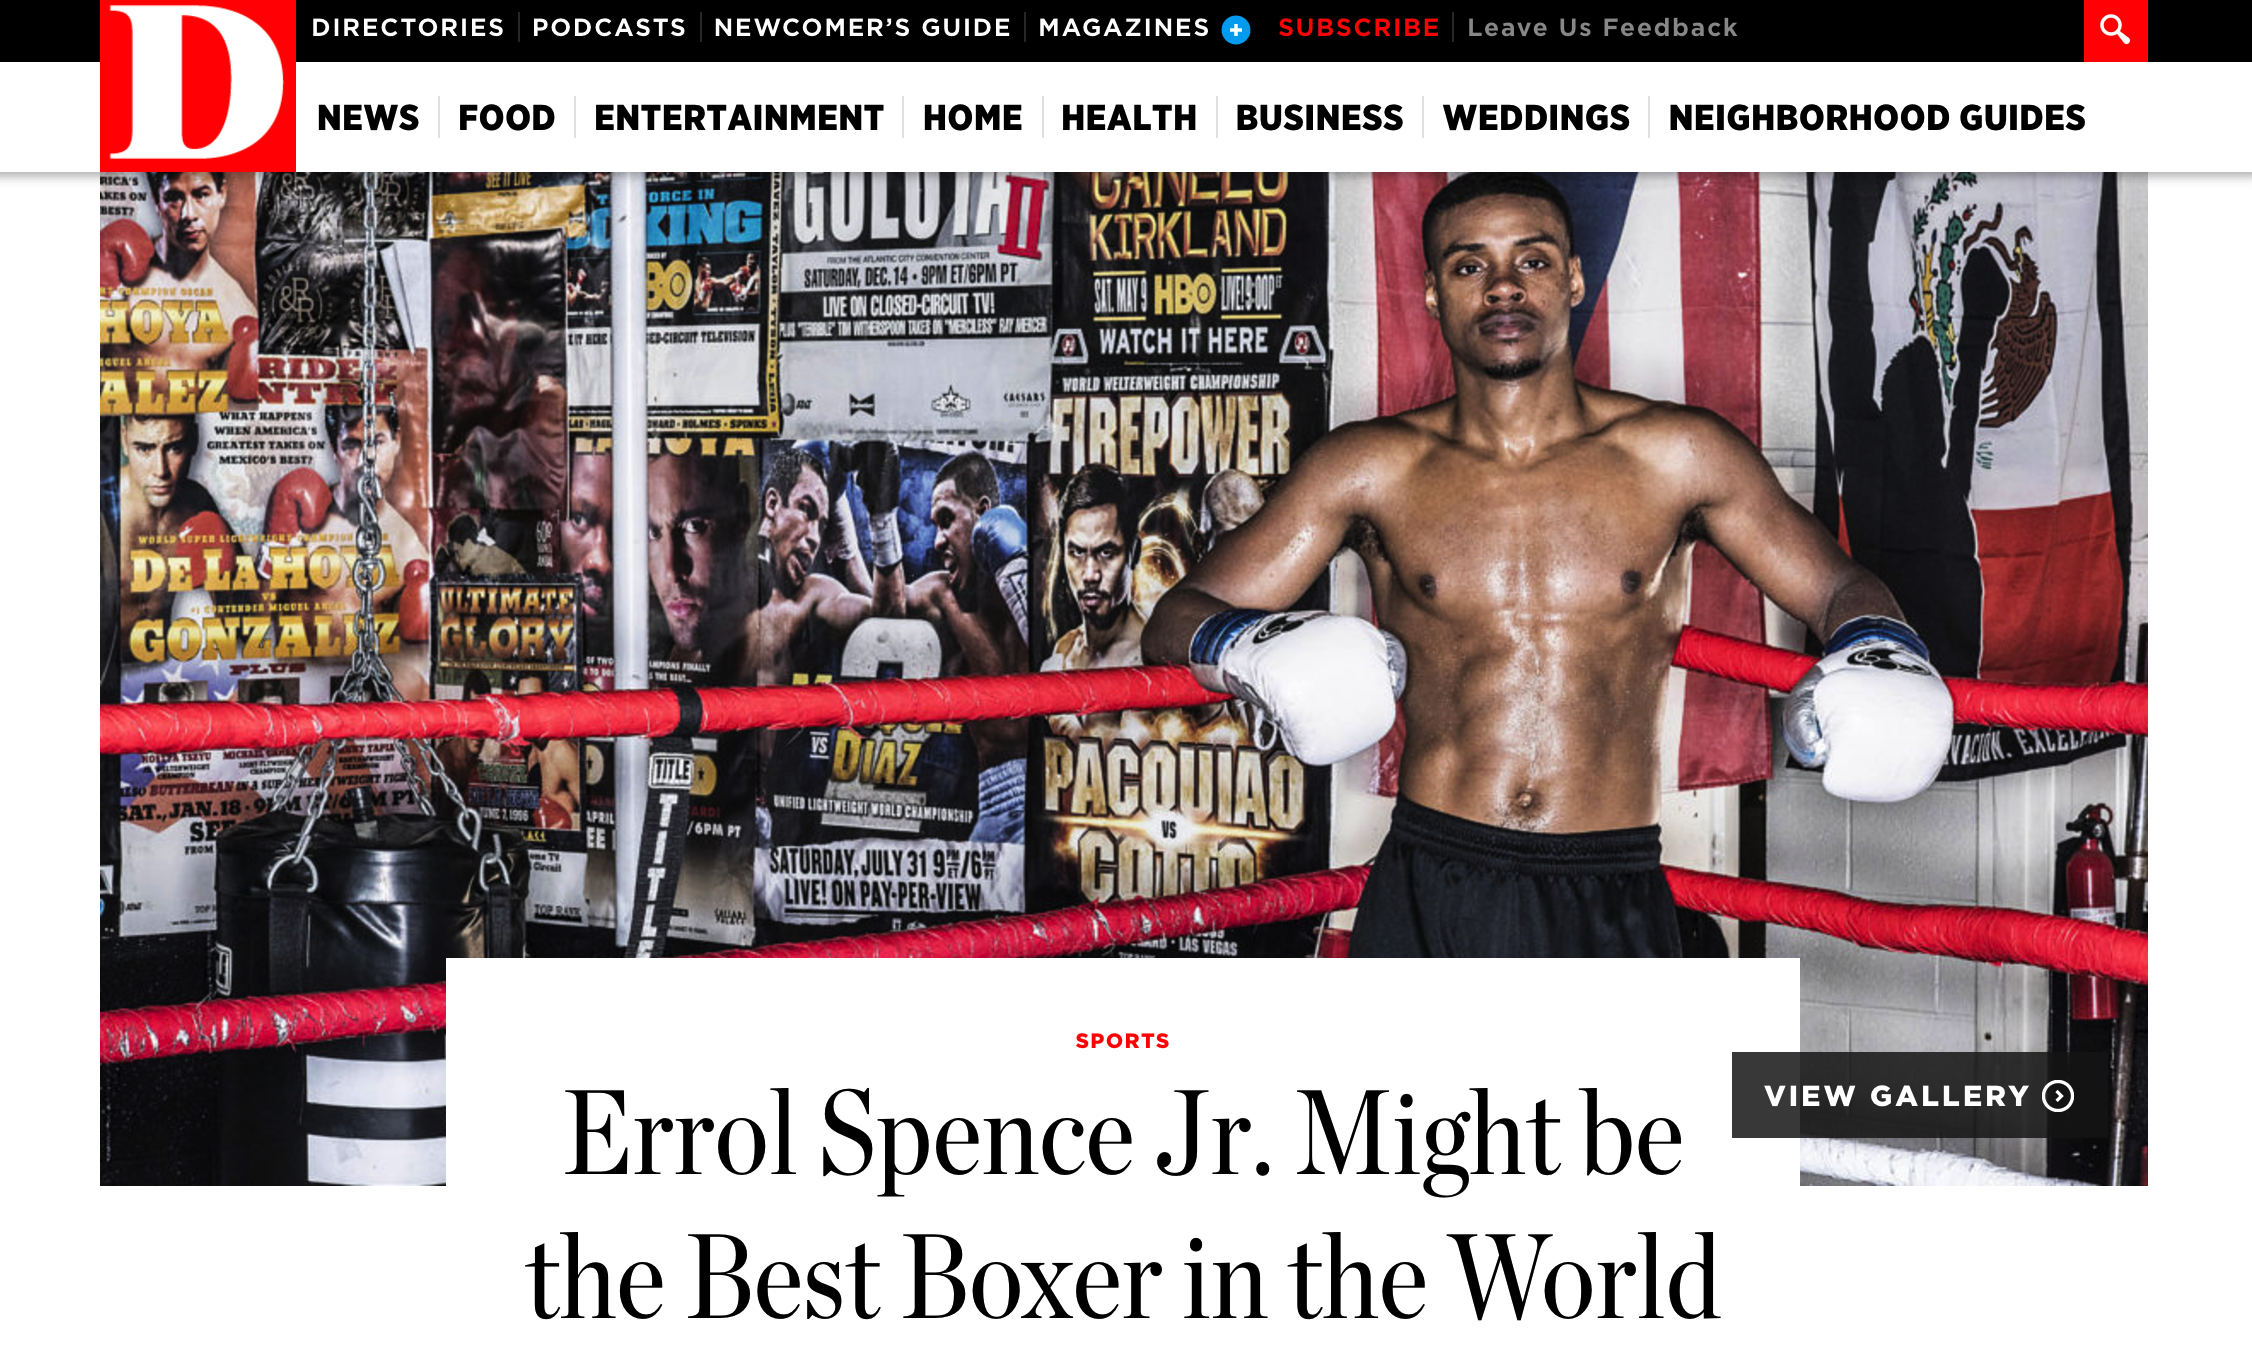 D MaGAZINE, a glossy published in dallas, texas, featured errol spence jr. prior to his first title fight on may 27, 2017.